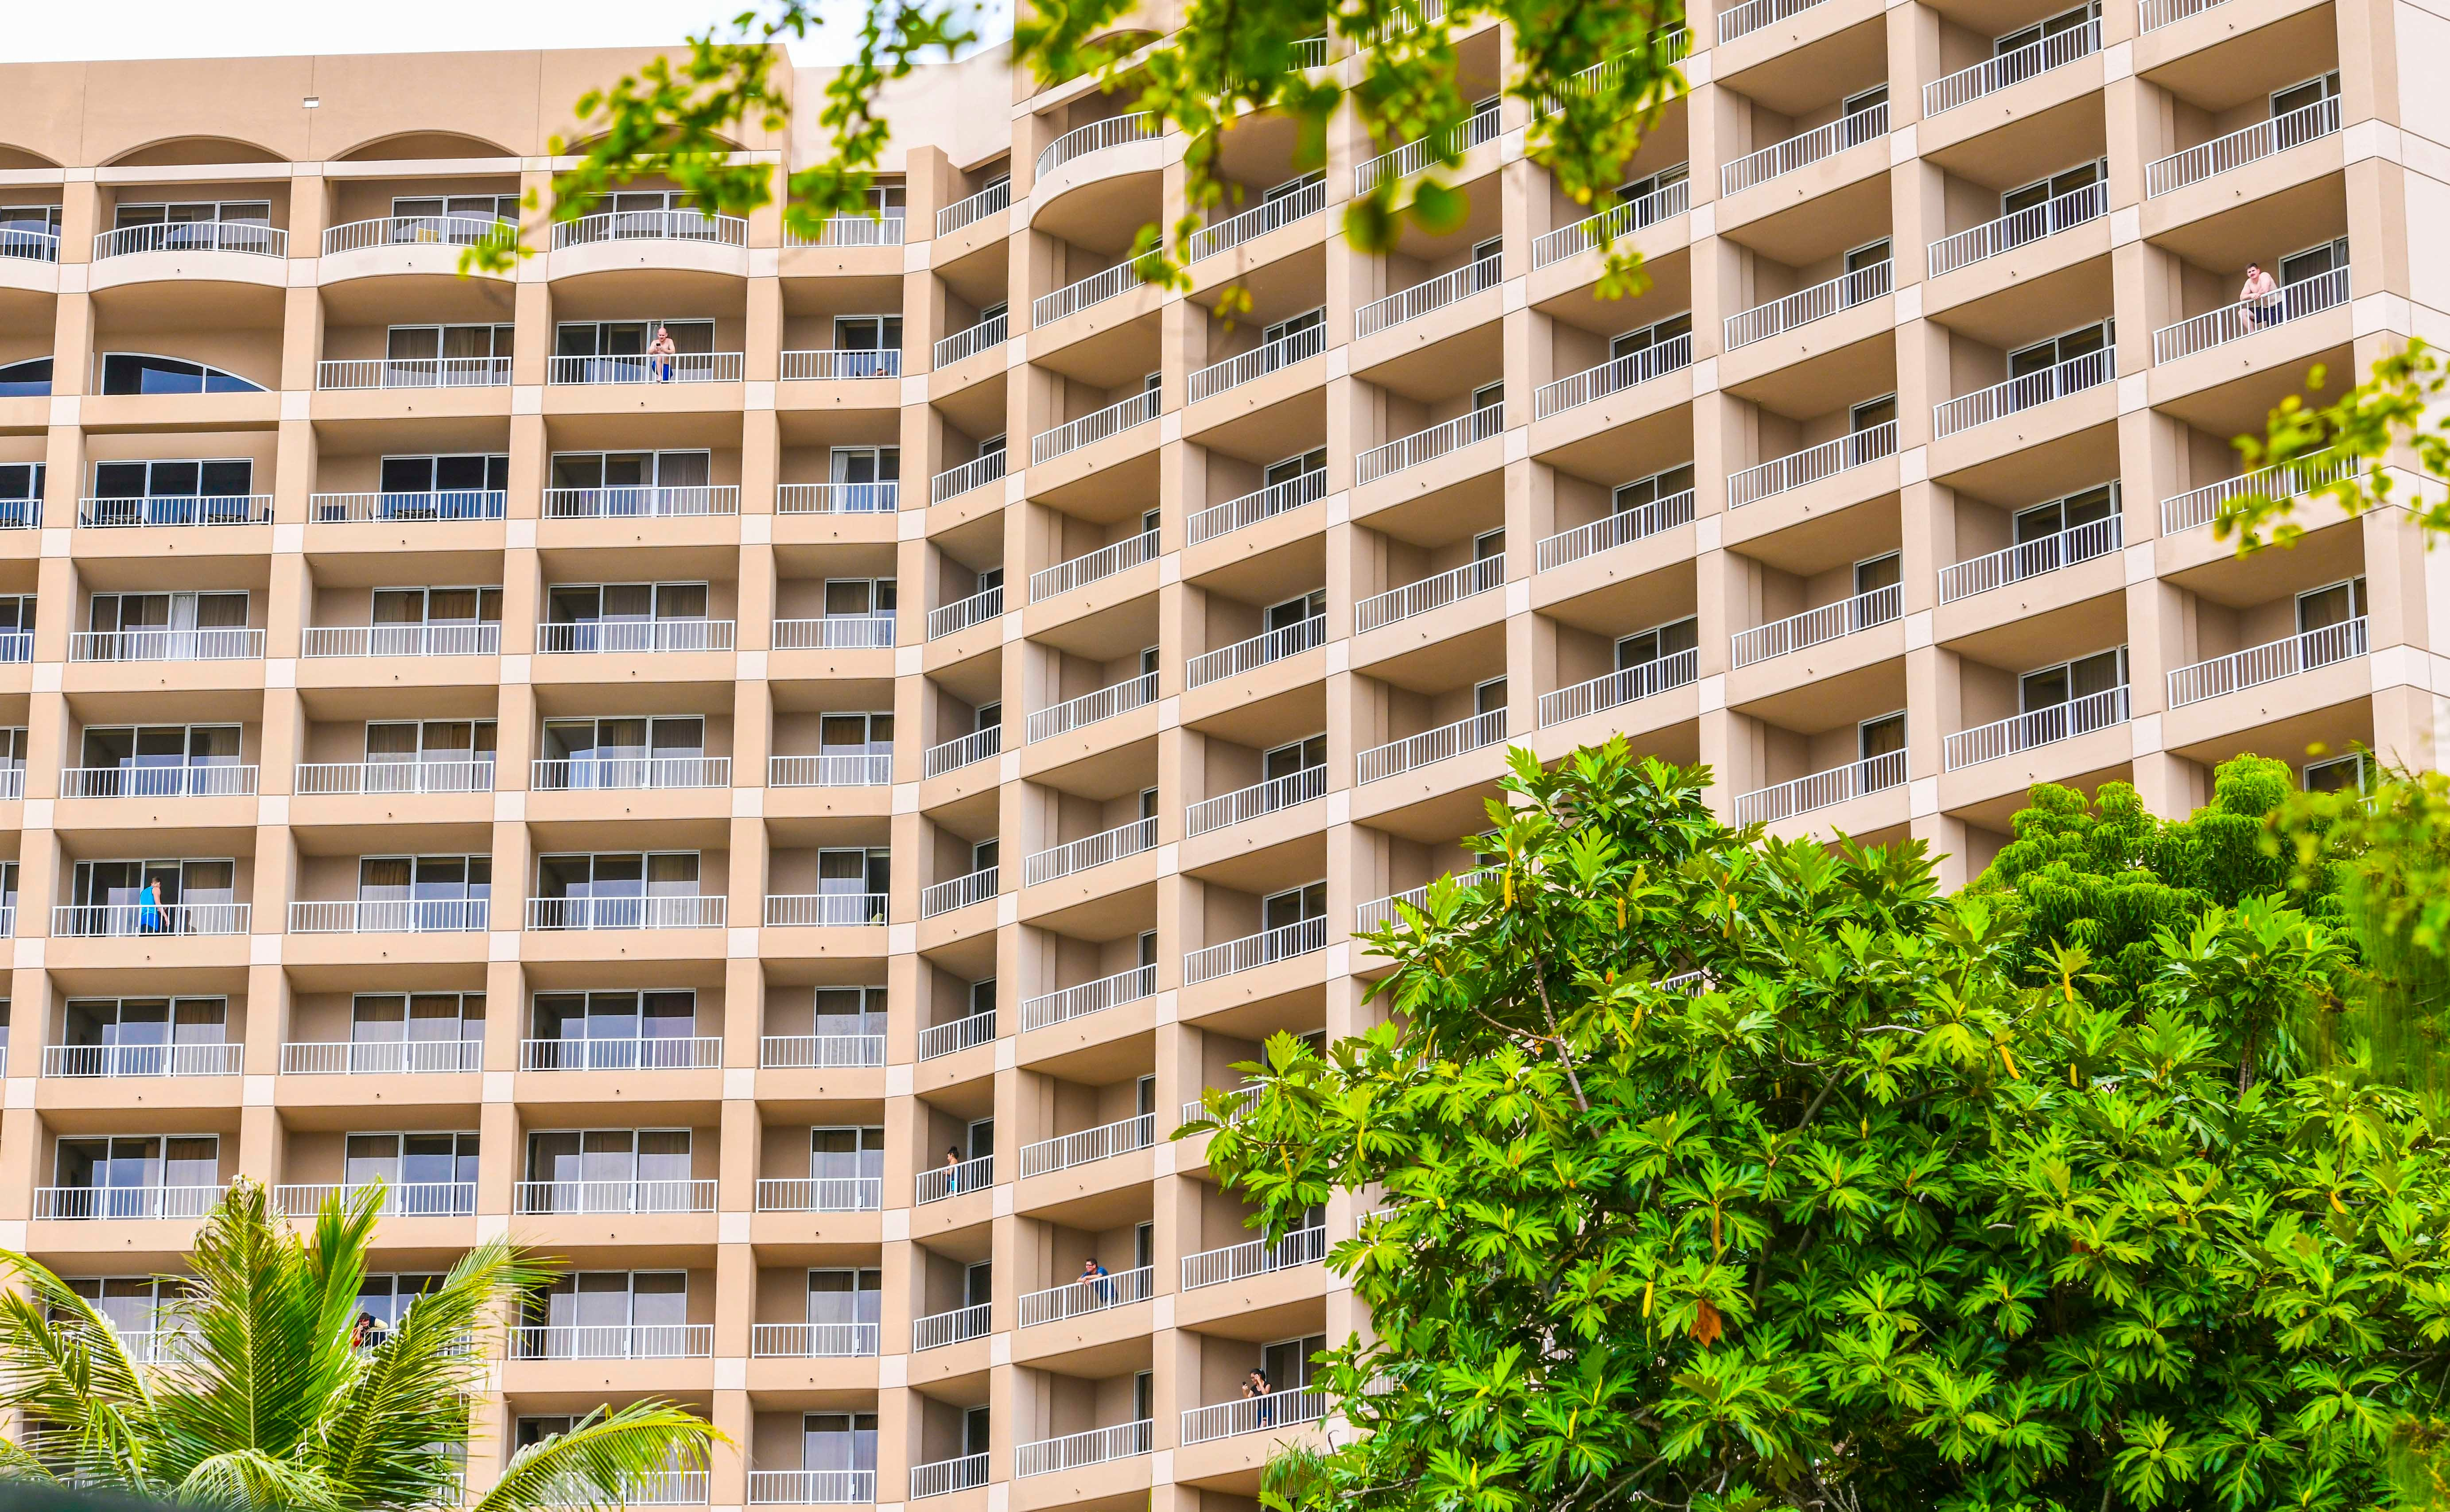 The Hyatt Regency Guam, as photographed April 8, 2020. A one-day COVID-19 vaccination clinic will be held at the hotel March 30, from 4 p.m. to 7 p.m.